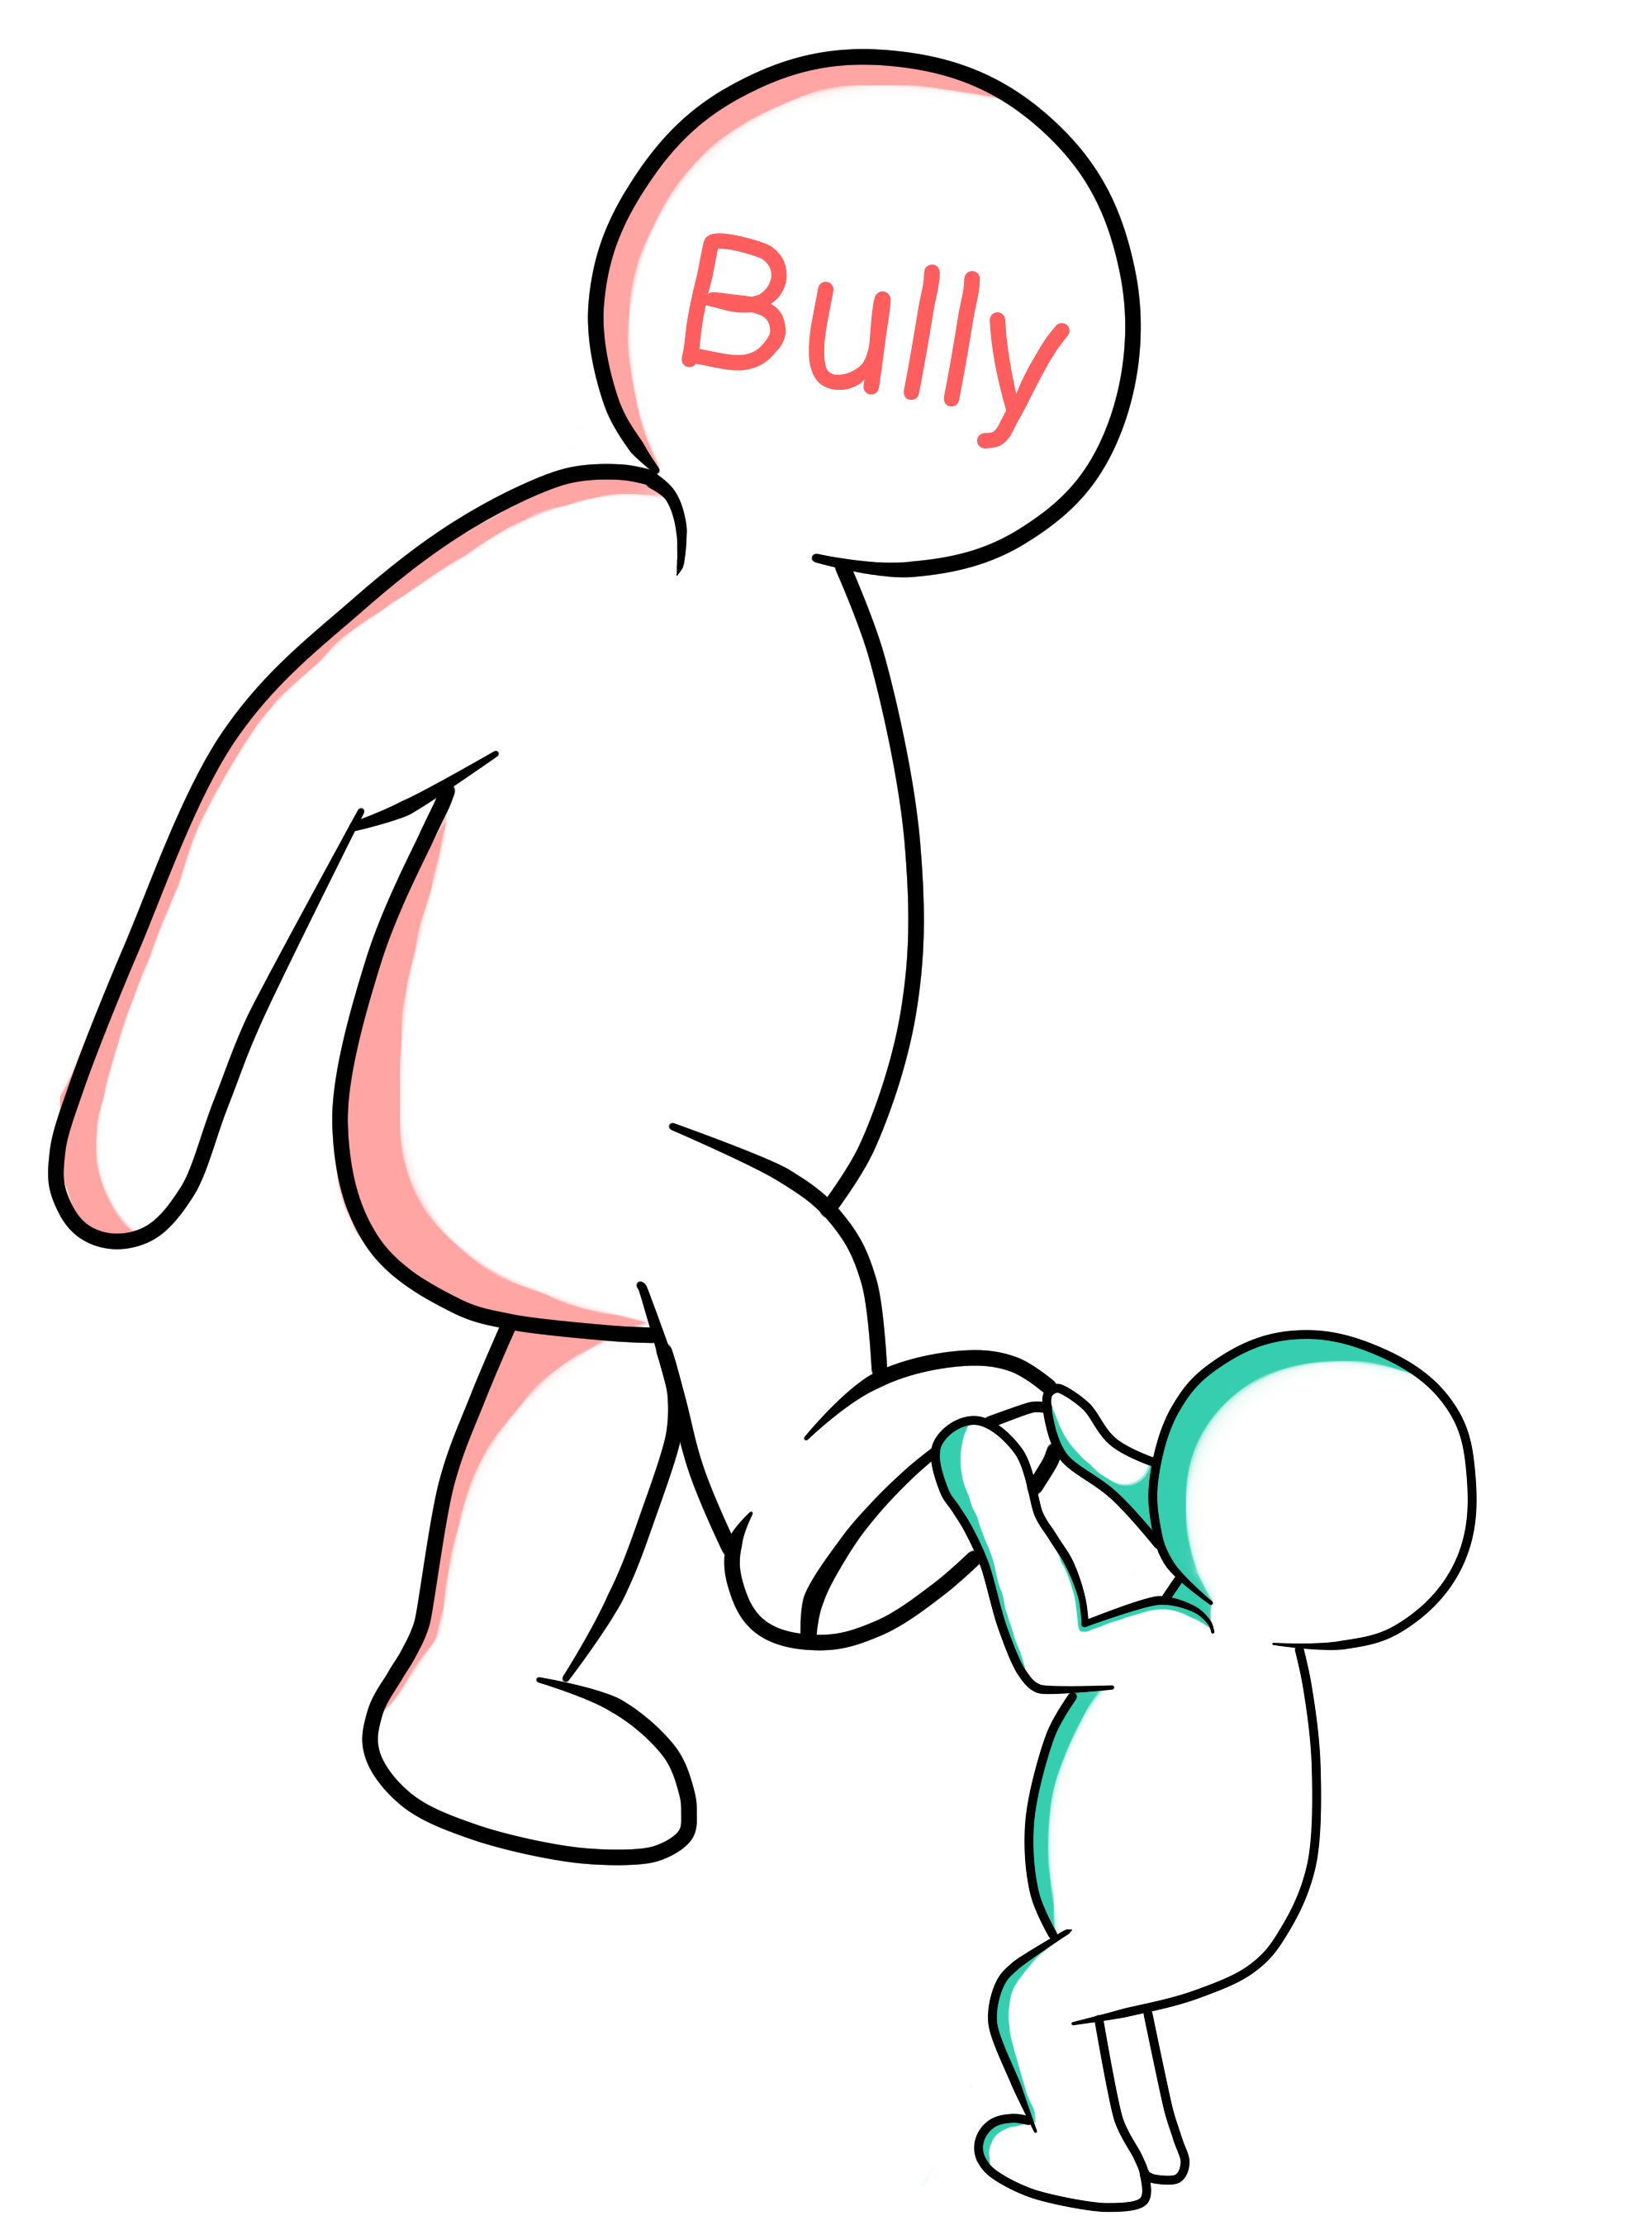 Bullying drawing. Products archive bullyingnomore